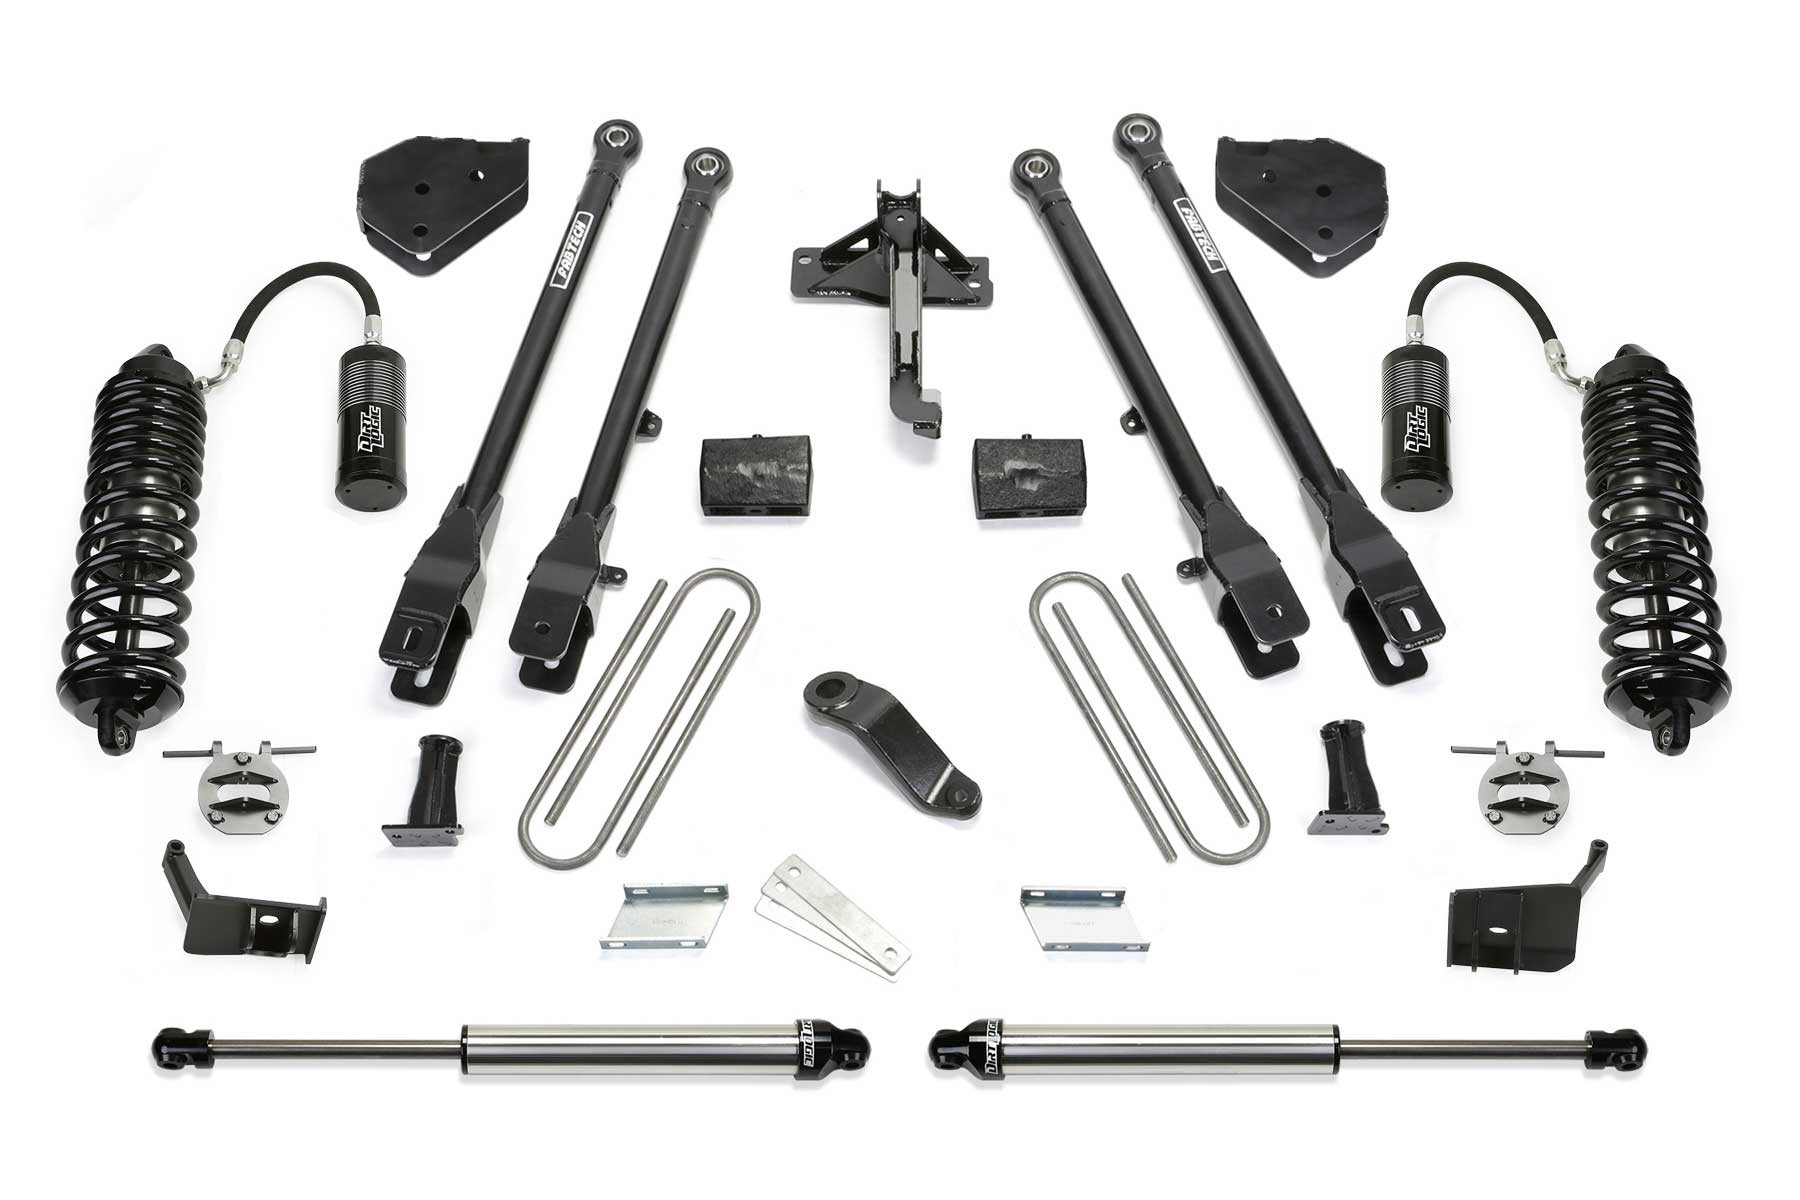 FABTECH  2018 FORD F450 / F550 4WD- 6″ 4 LINK SYSTEM W/ FRONT DIRT LOGIC 4.0 RESI COILOVERS & REAR DIRT LOGIC 2.25 SHOCKS